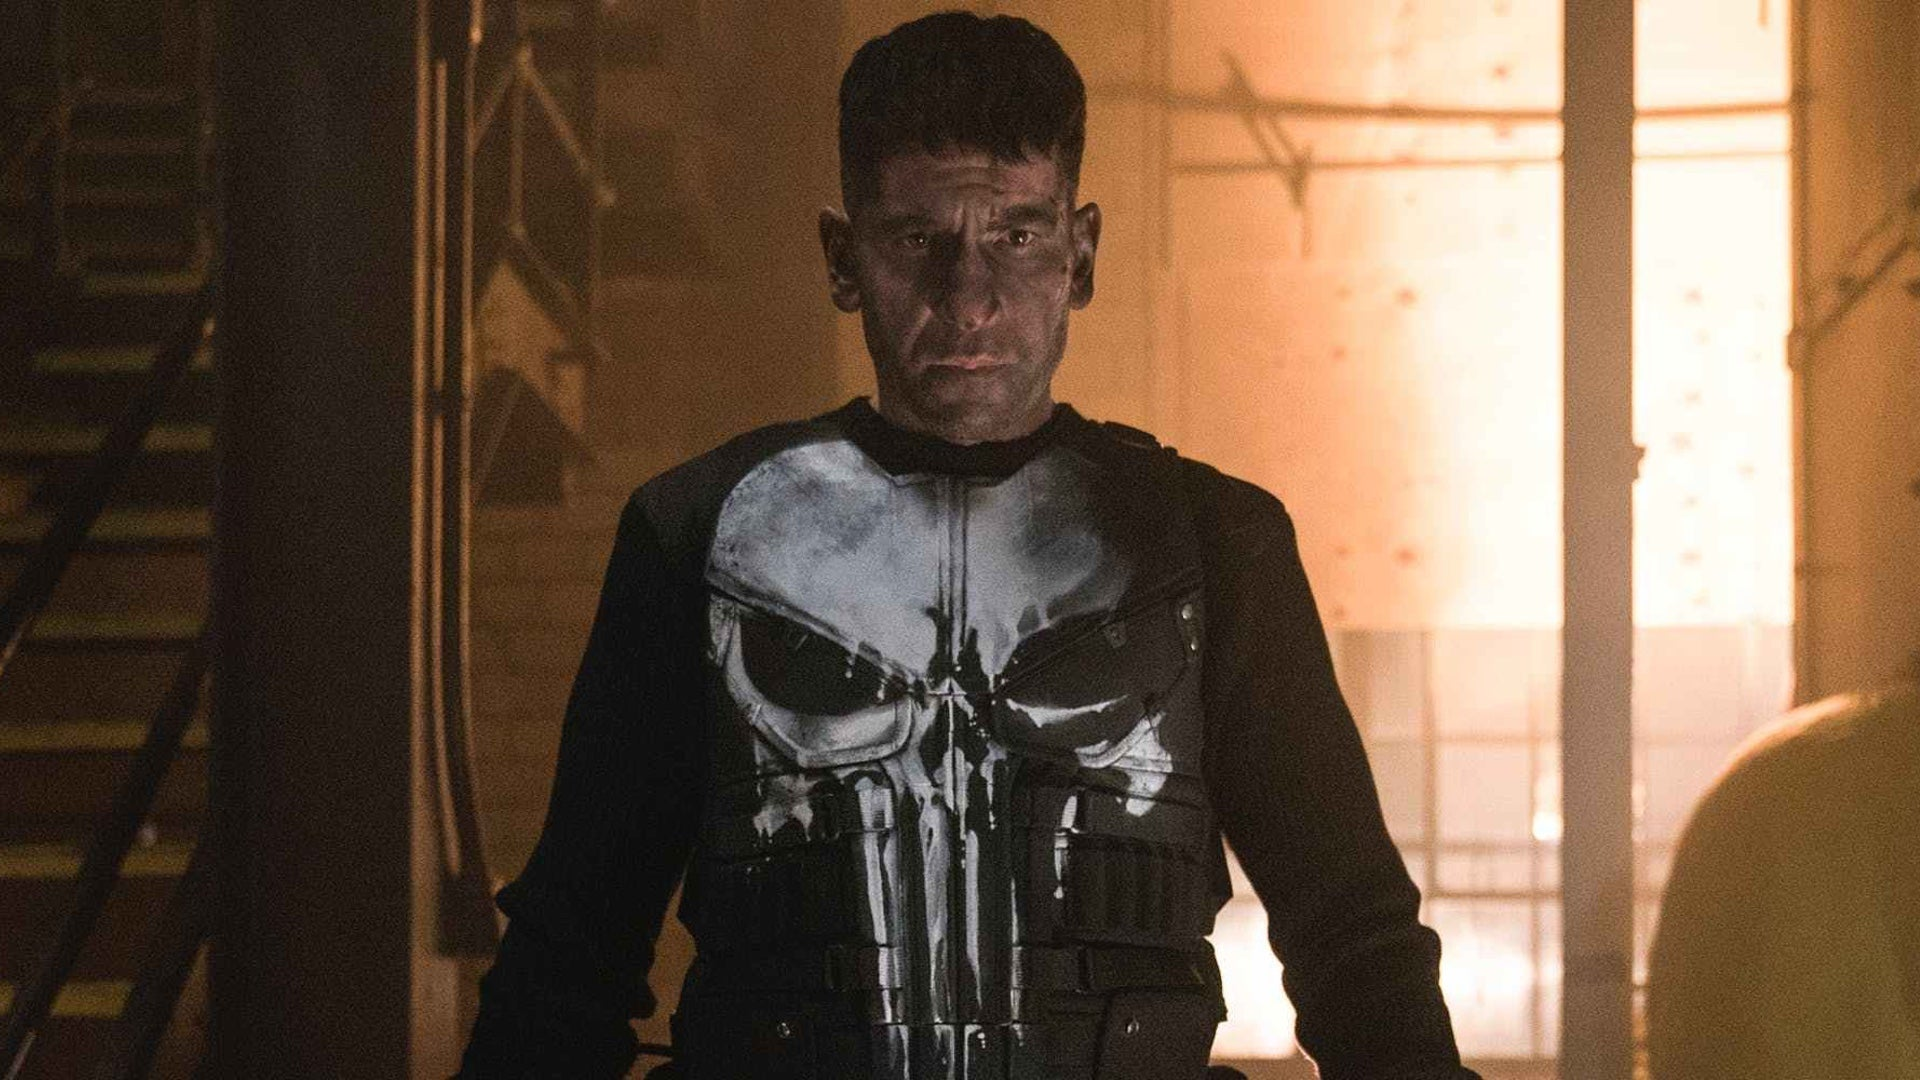 Punisher Creator Gerry Conway Says It's 'Disturbing' To See Authority Figures Embrace The Vigilante